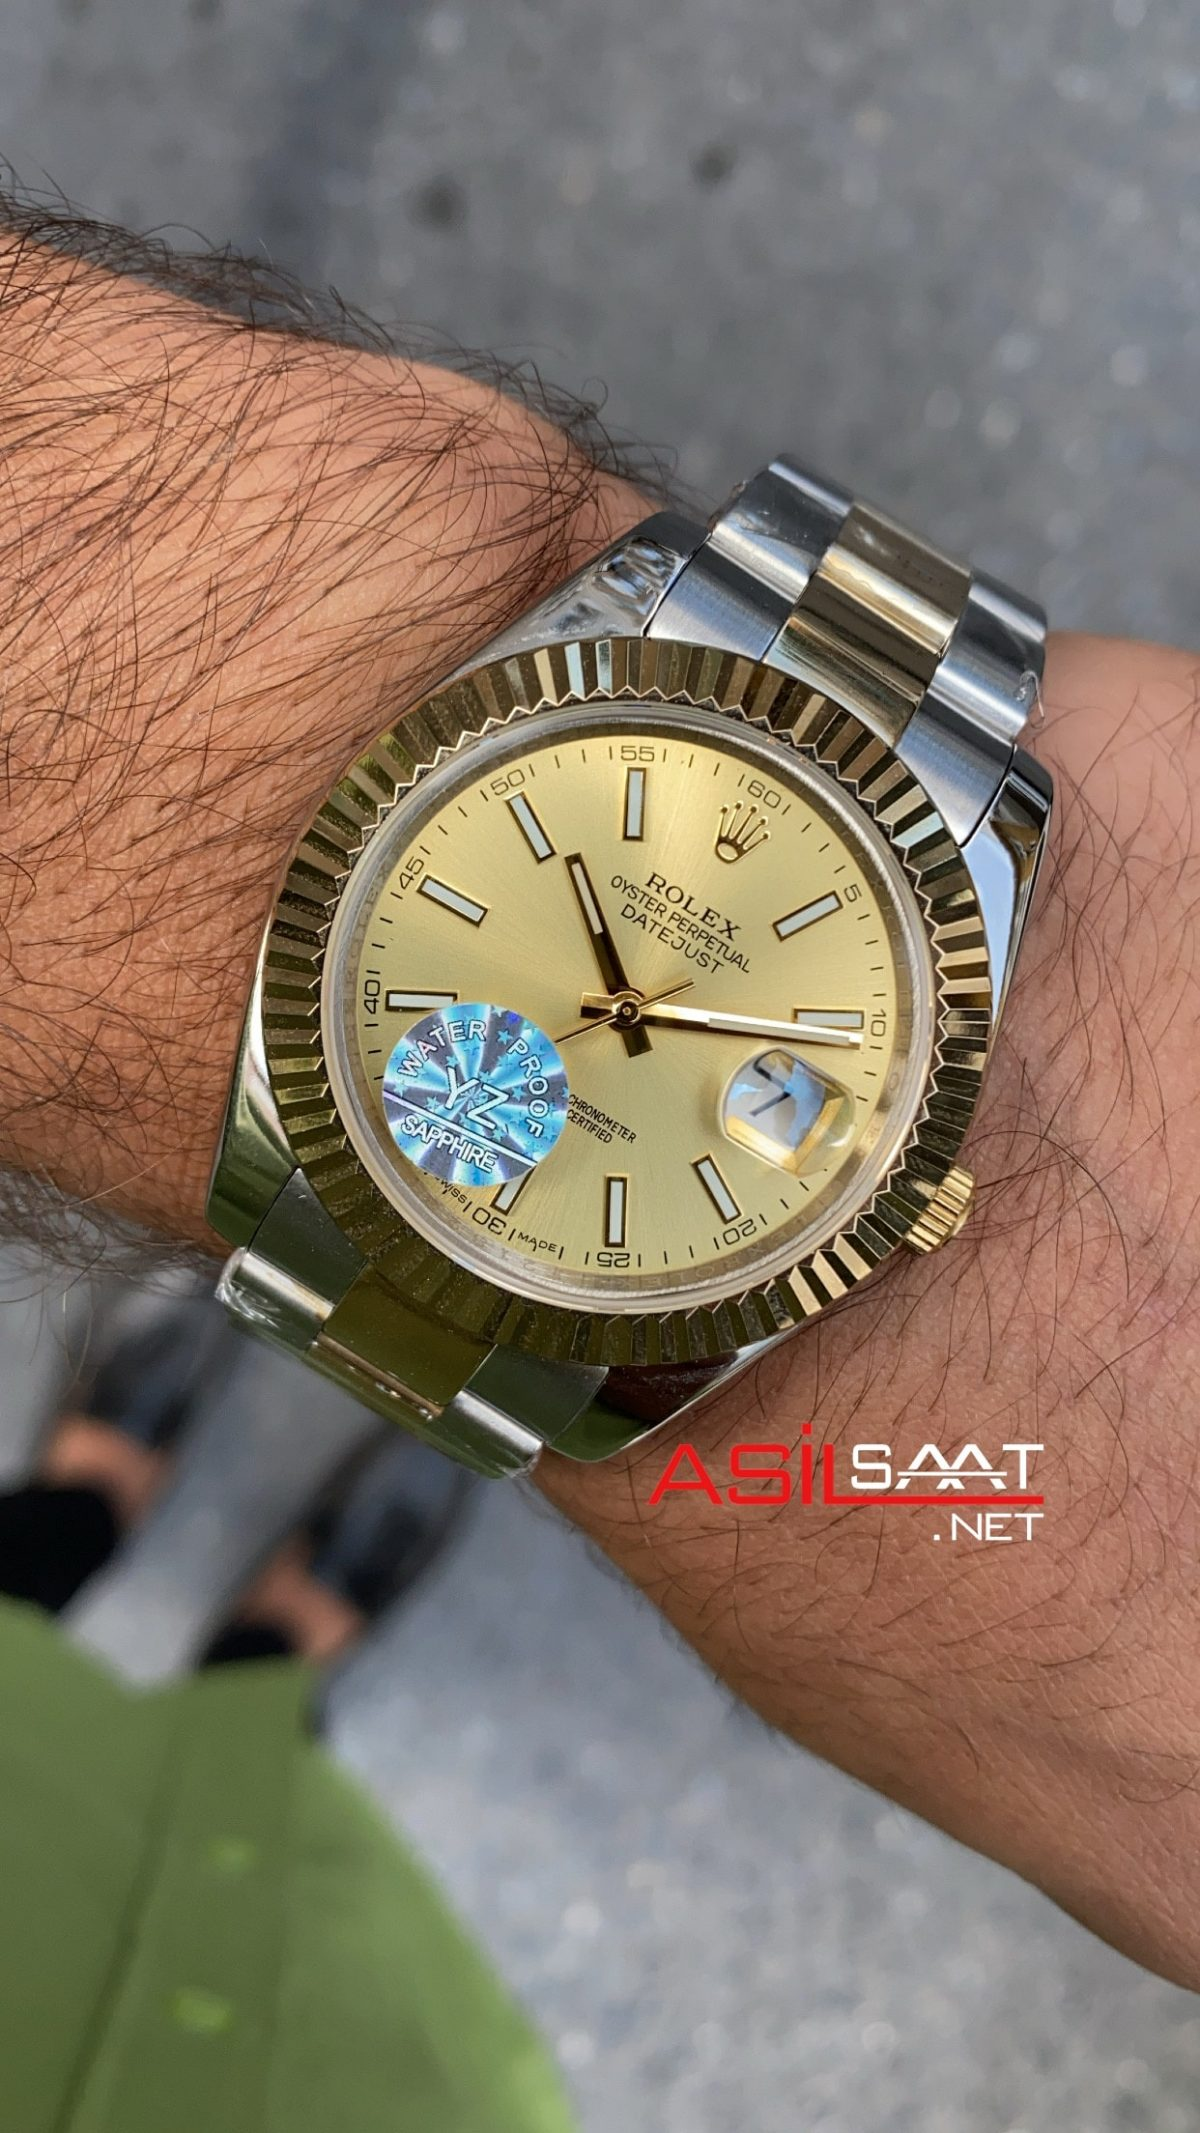 Rolex Datejust Oyster 126333 Champagne Dial ROLDJ019